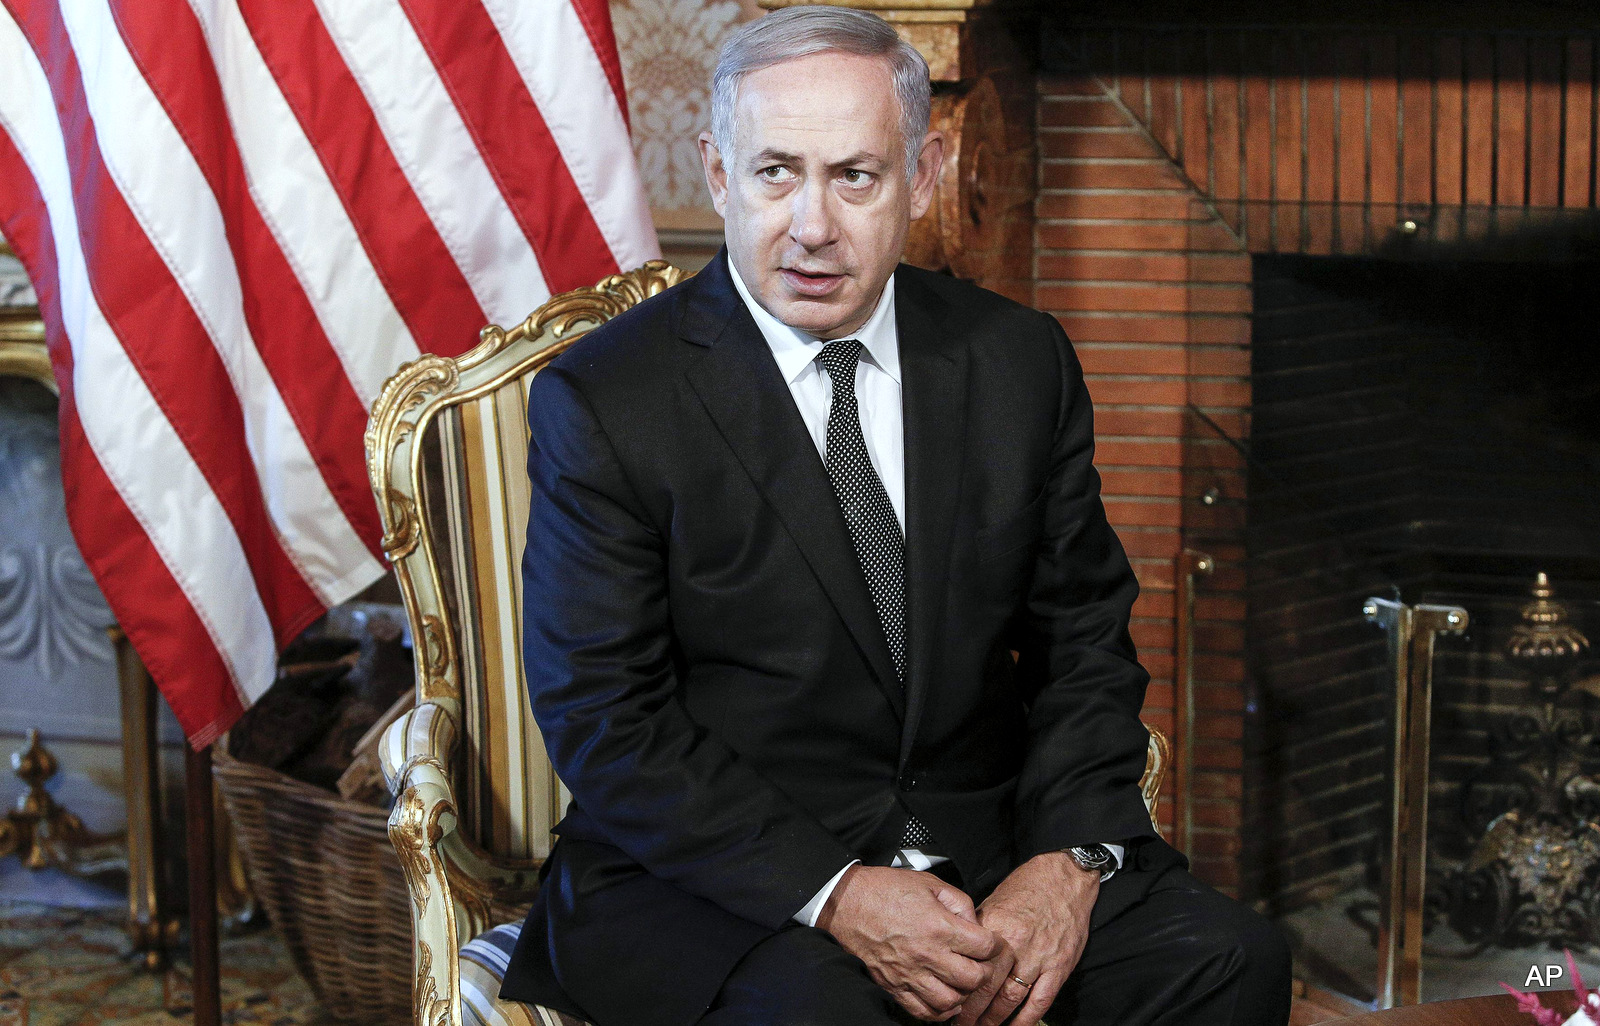 Israeli premier Benjamin Netanyahu is portrayed during his meeting with U.S. Secretary of State John Kerry at Villa Taverna, U.S. Embassy, in Rome, Italy, Monday, June 27, 2016. (Giuseppe Lami/ANSA pool via AP)